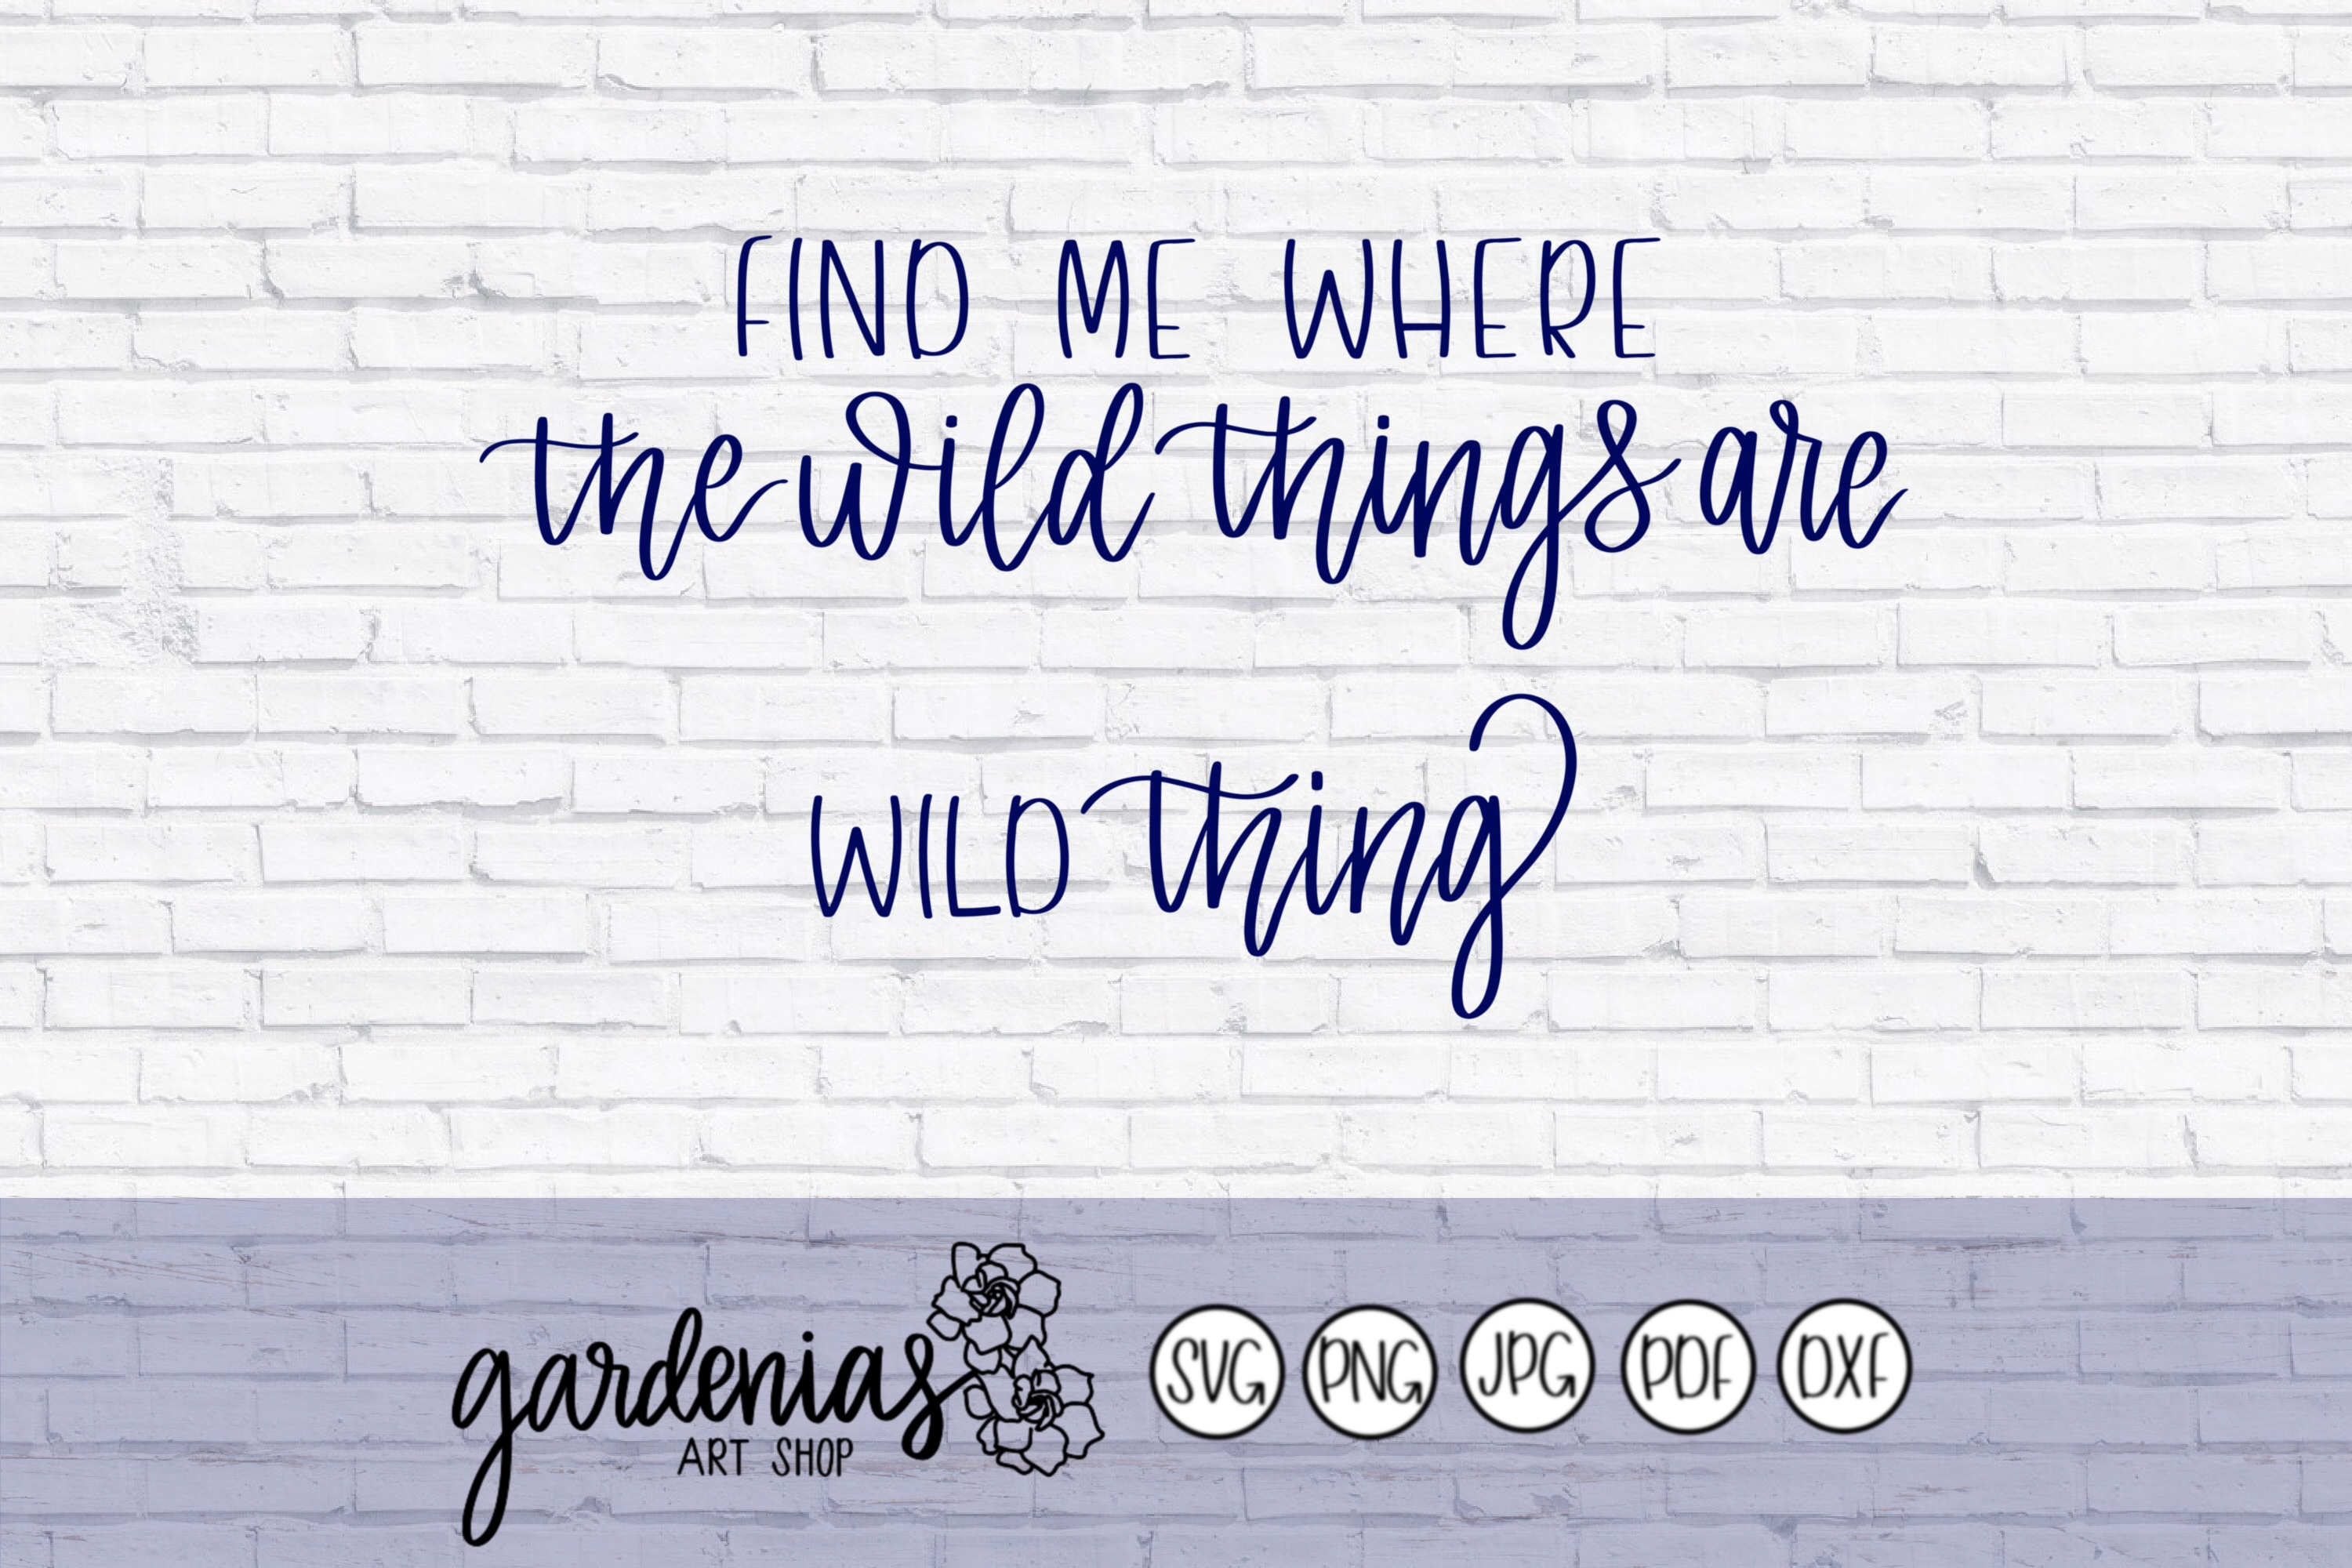 Find Me Where The Wild Things Are - Wild Thing example image 2